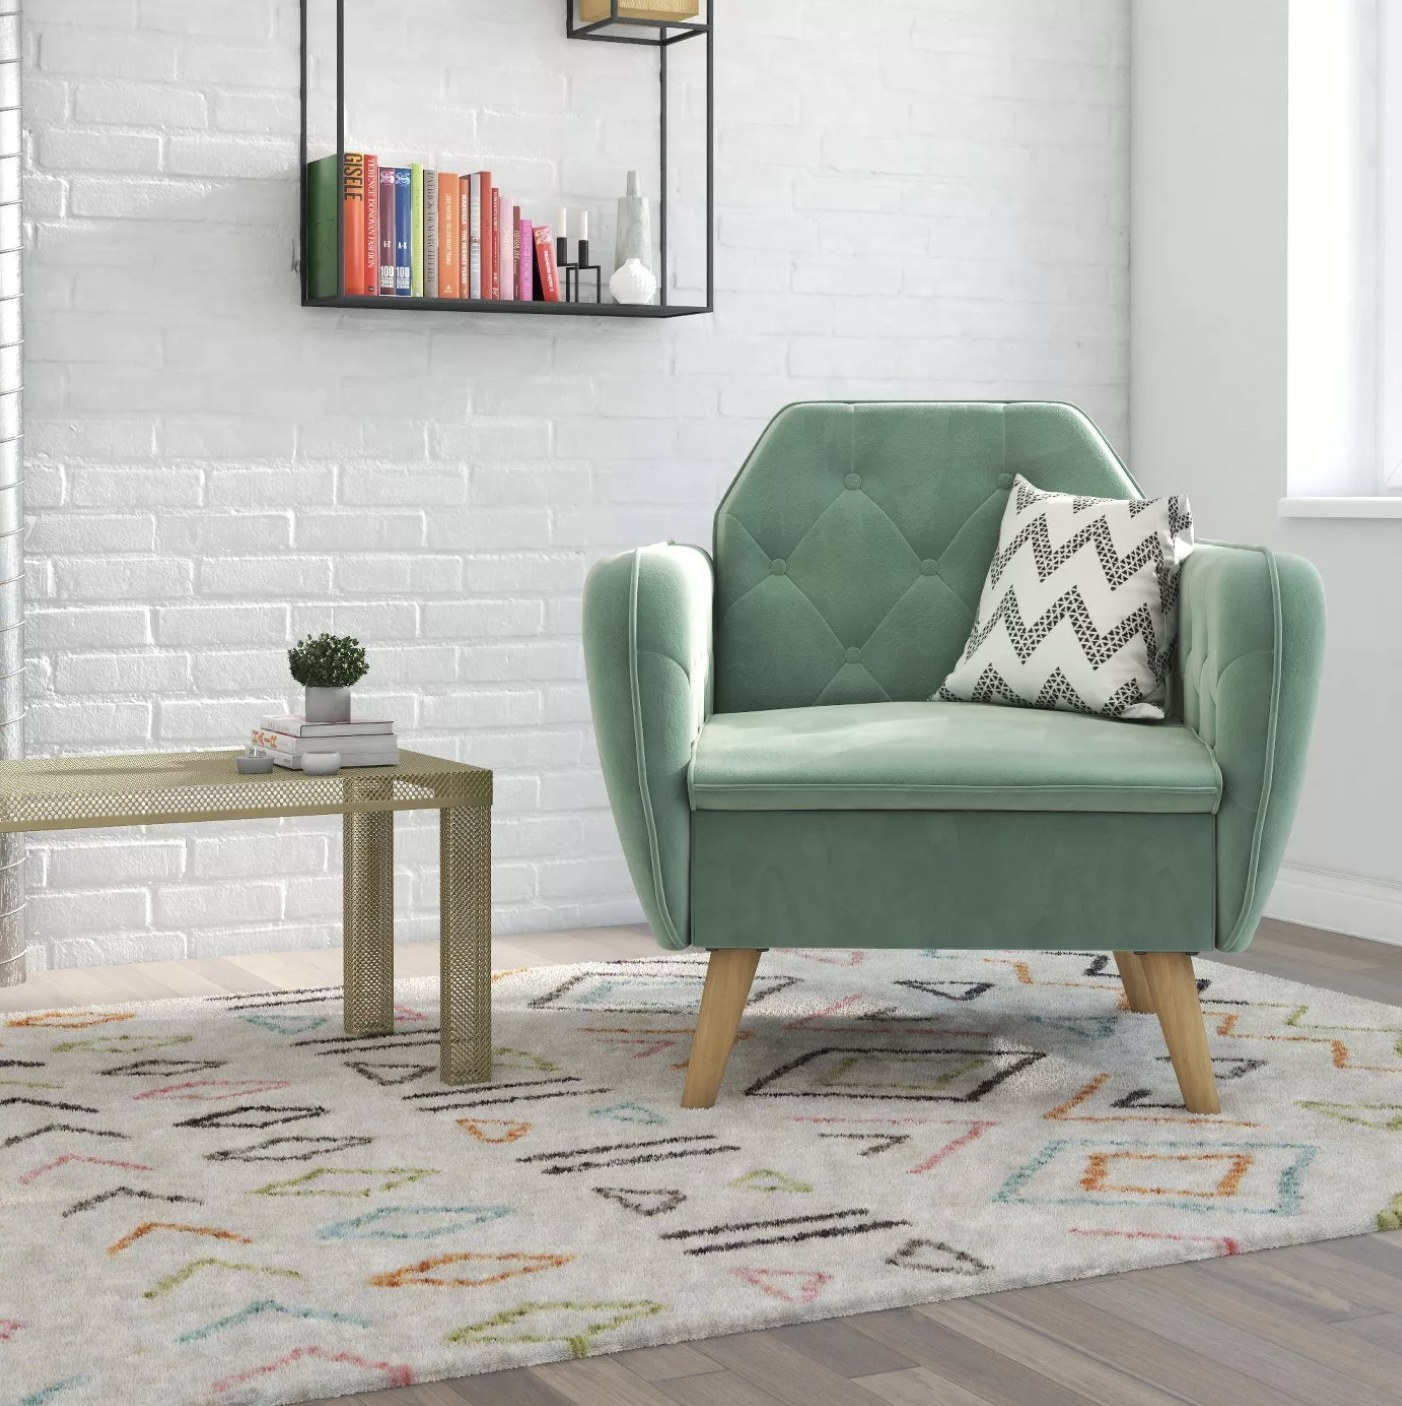 A pale green accent chair